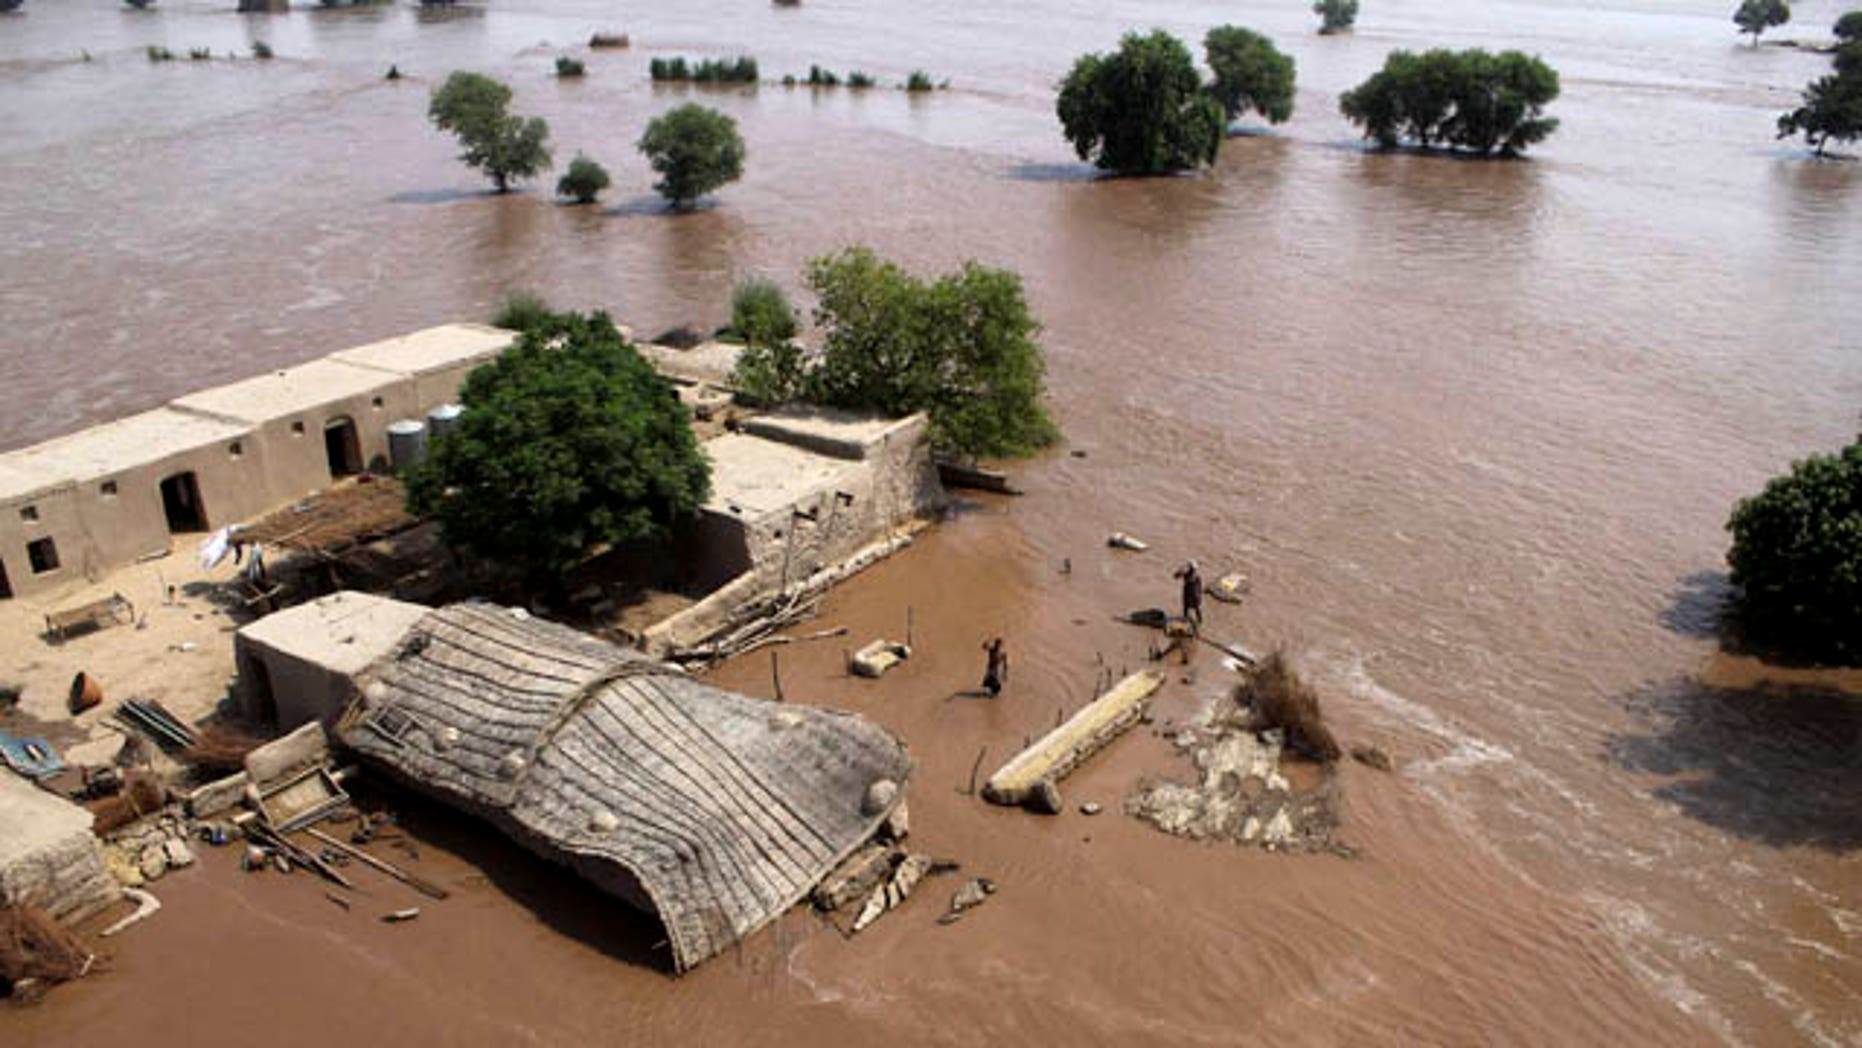 September 12, 2014: Pakistani villagers wait to be rescued as  they are stranded by flood waters in district Multan, Pakistan. (AP Photo/Mansoor Abass)